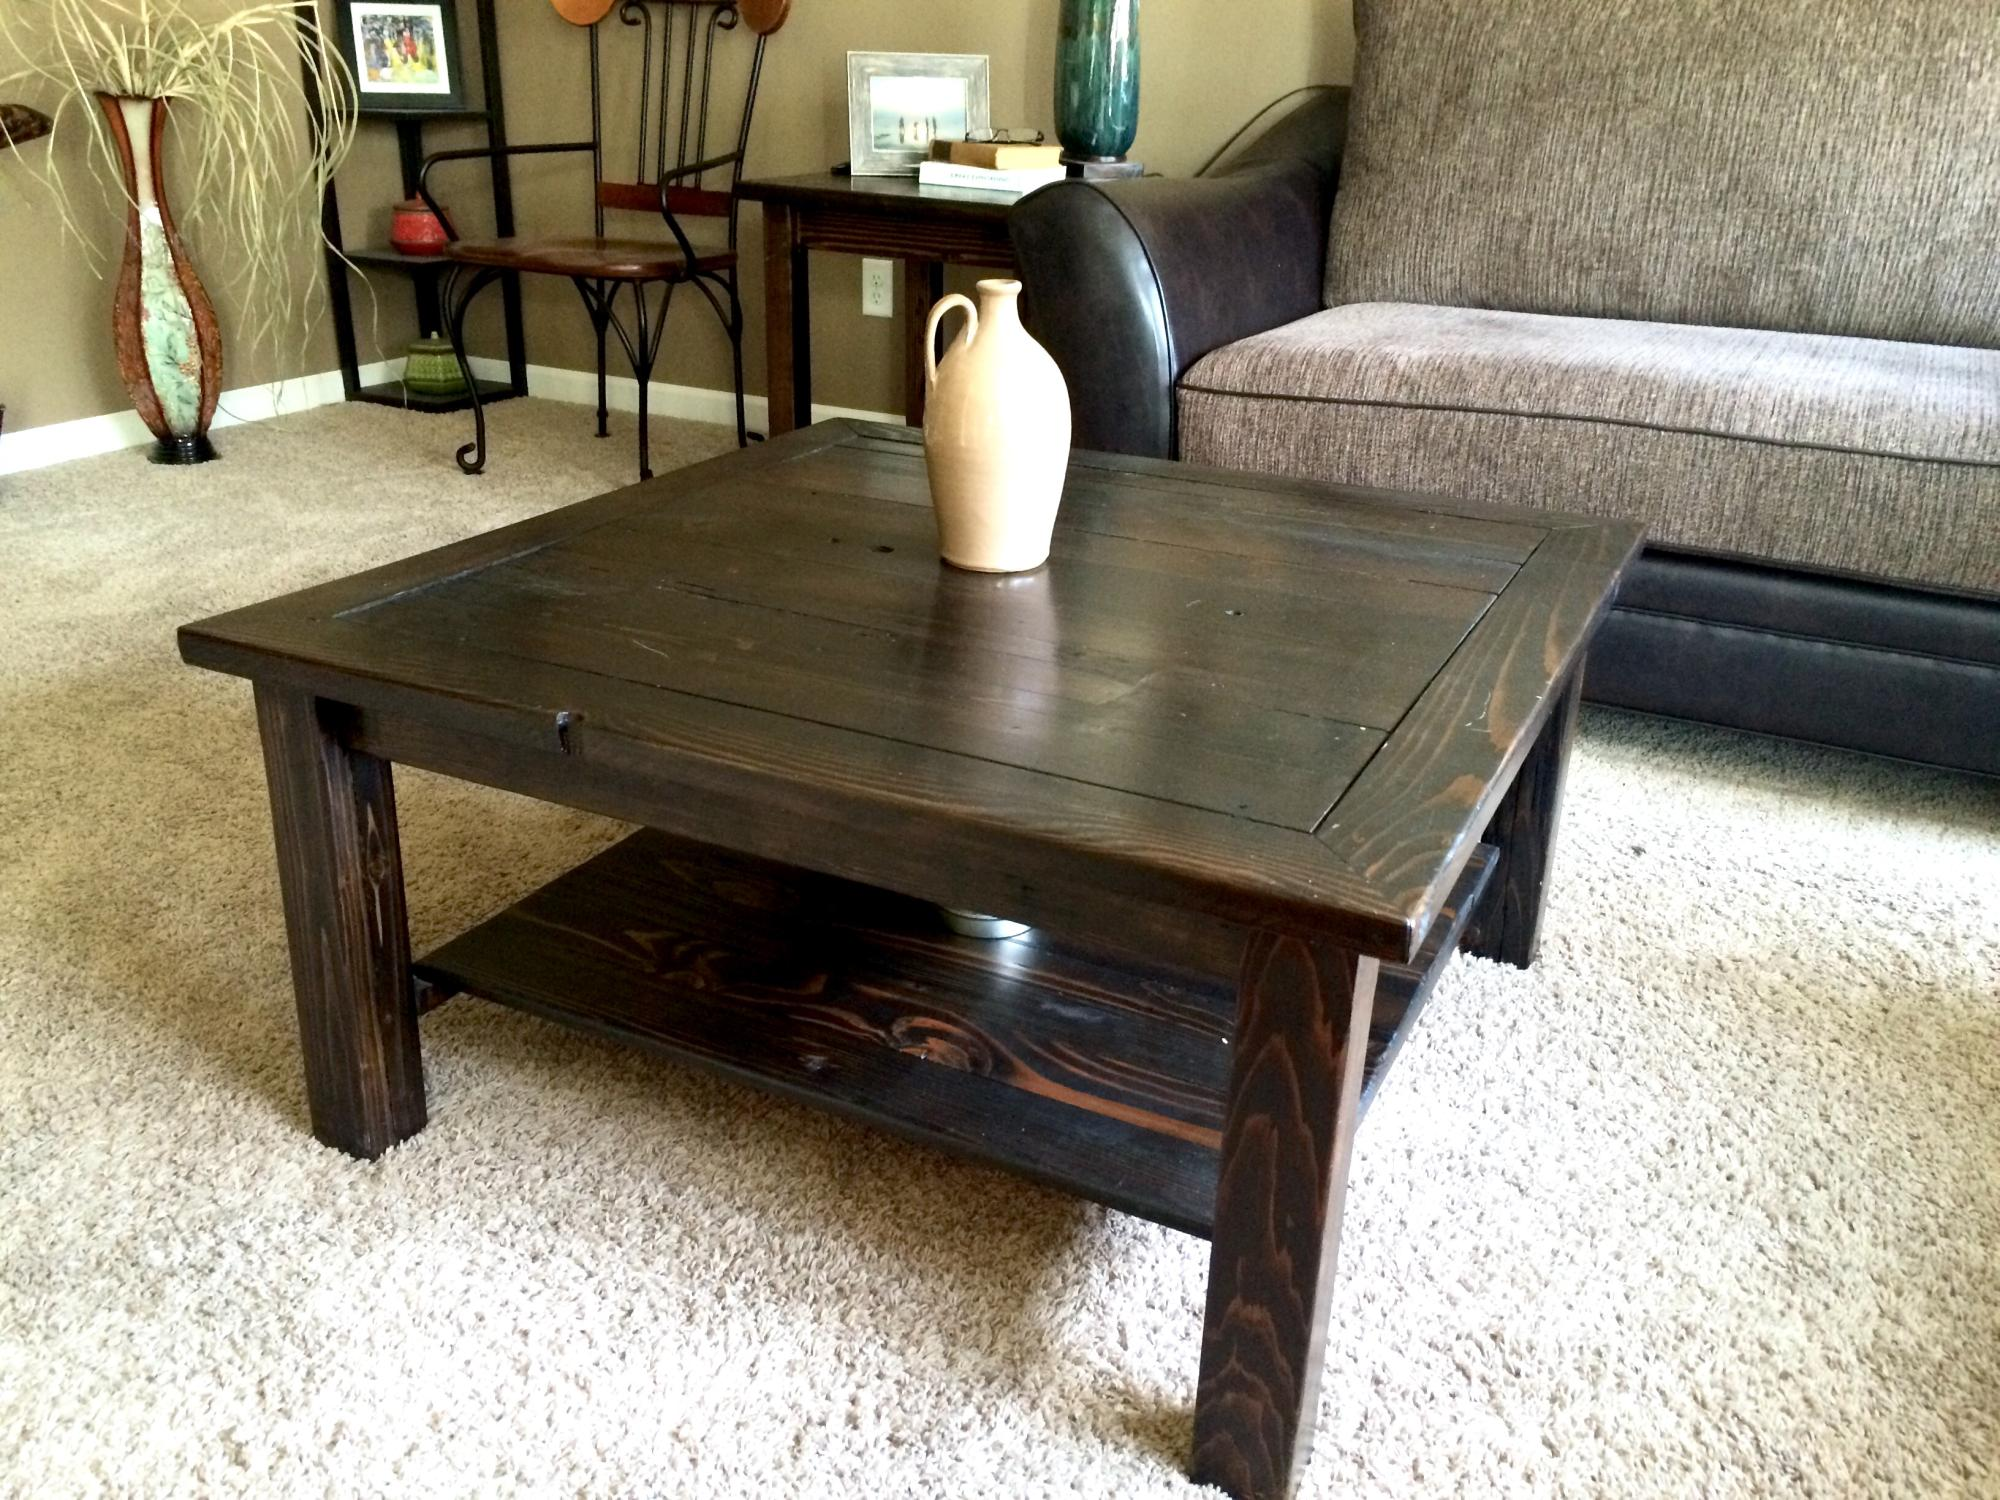 Stained drift lumber mixed wood coffee table.  36Lx36Wx18H  $400